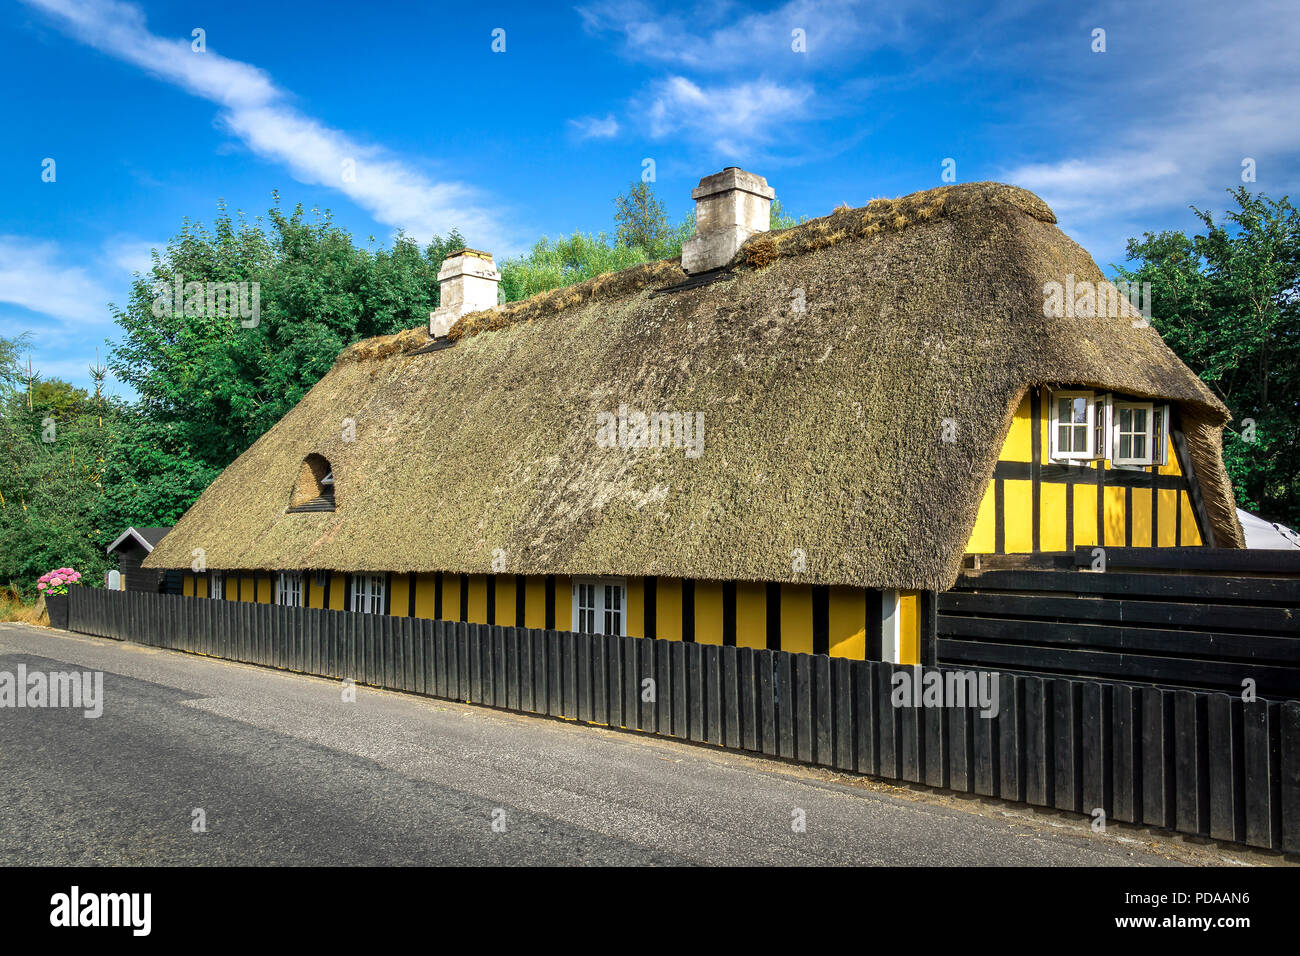 Denmark, Fredericia: Old half-timbered house in the eastern part of Jutland. Stock Photo